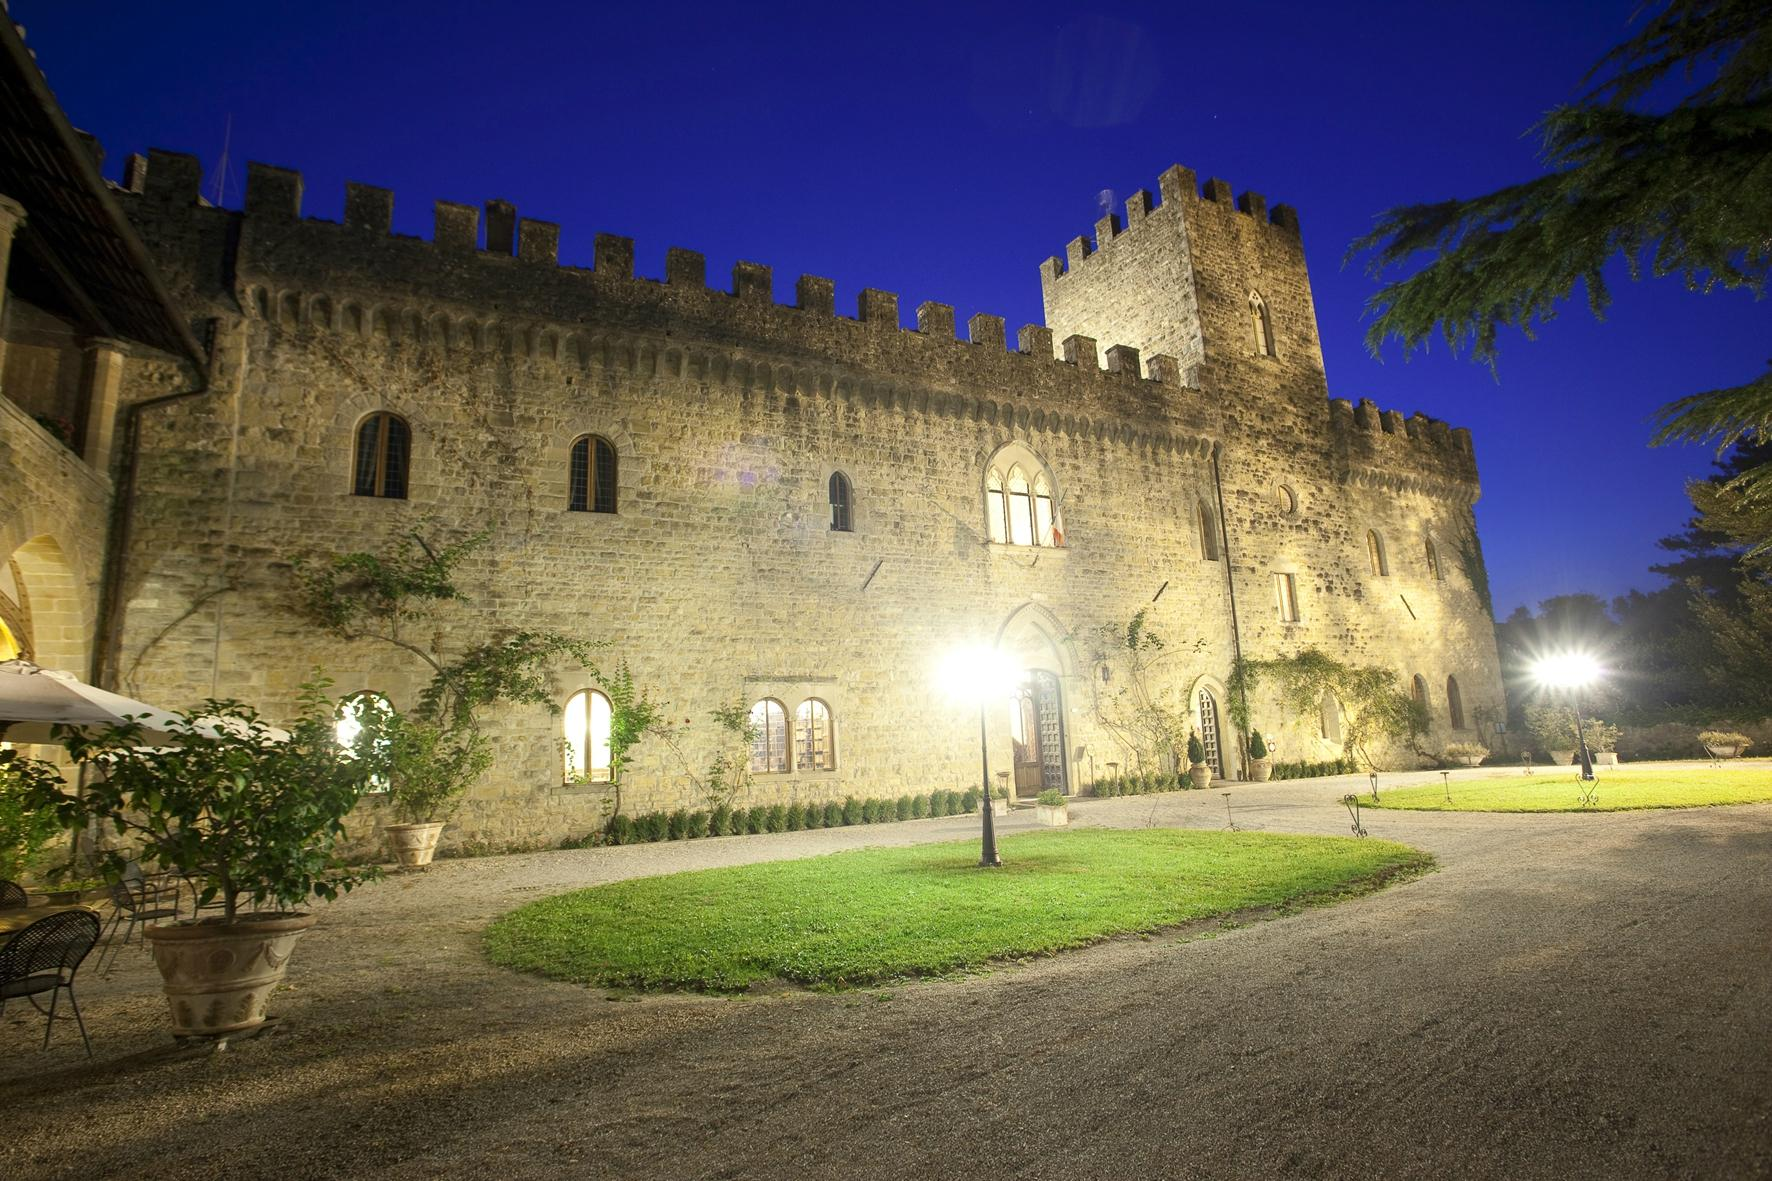 Castello dell'Oscano